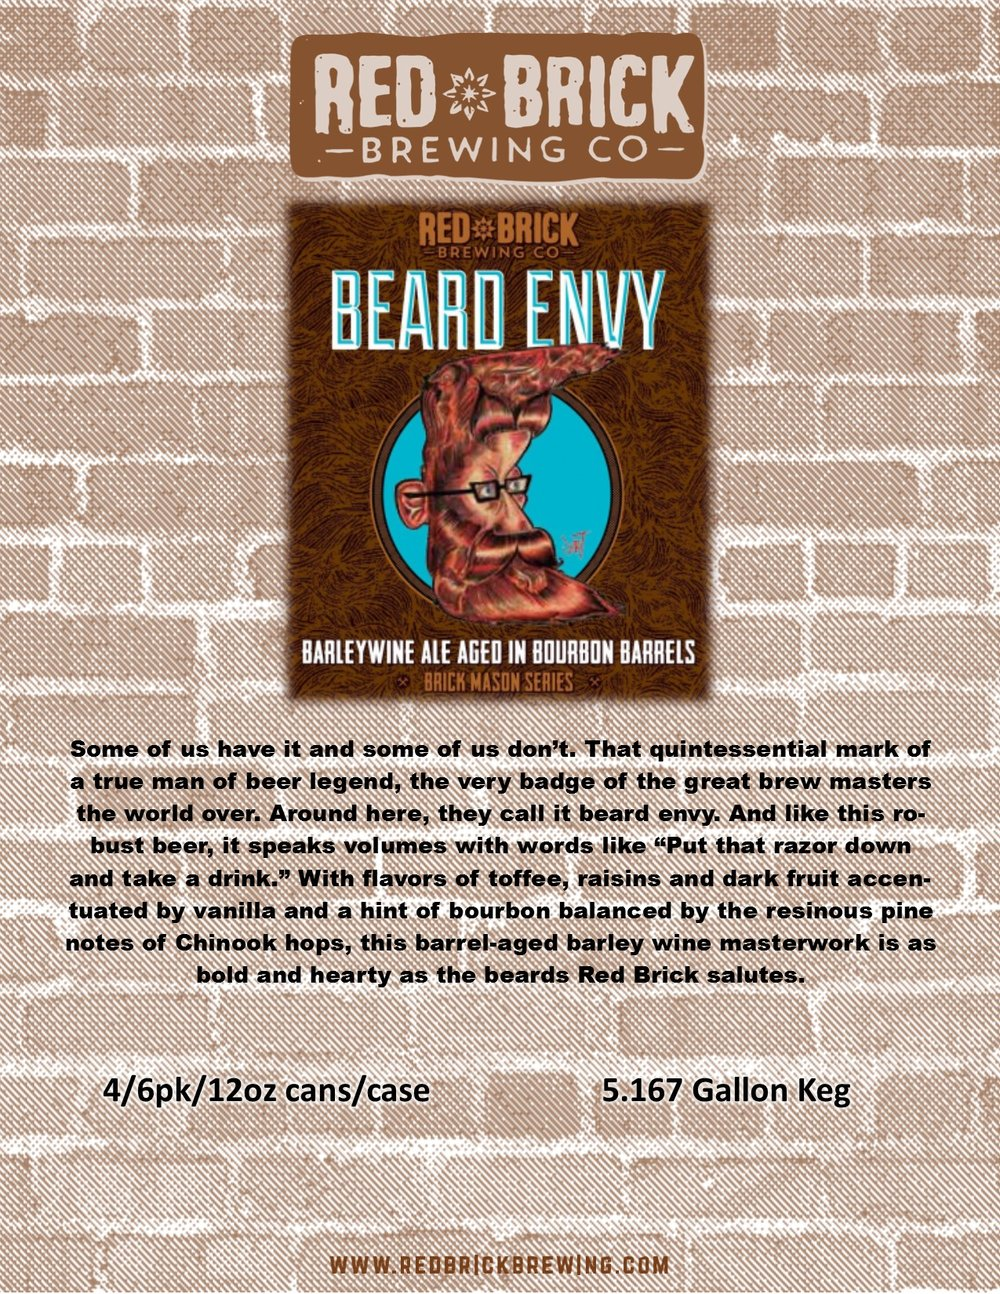 Red Brick Beard Envy April 2017 Promos.jpg